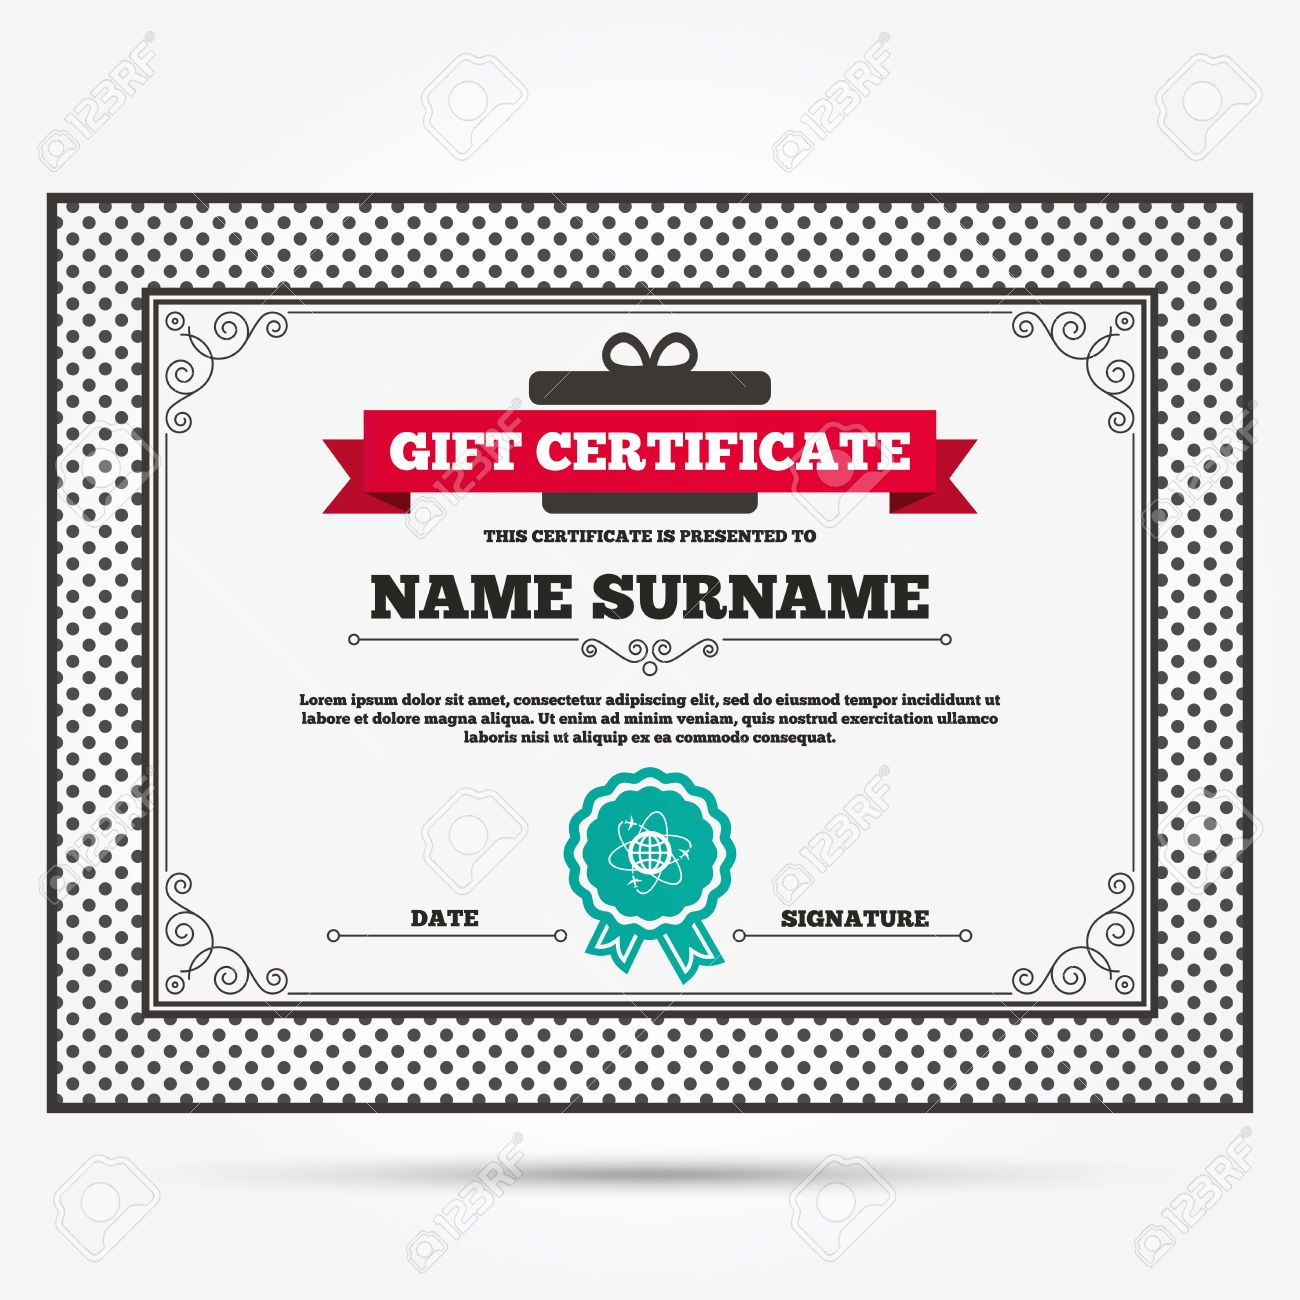 Gift certificate globe sign icon world logistics symbol gift certificate globe sign icon world logistics symbol worldwide travel flights template yadclub Choice Image